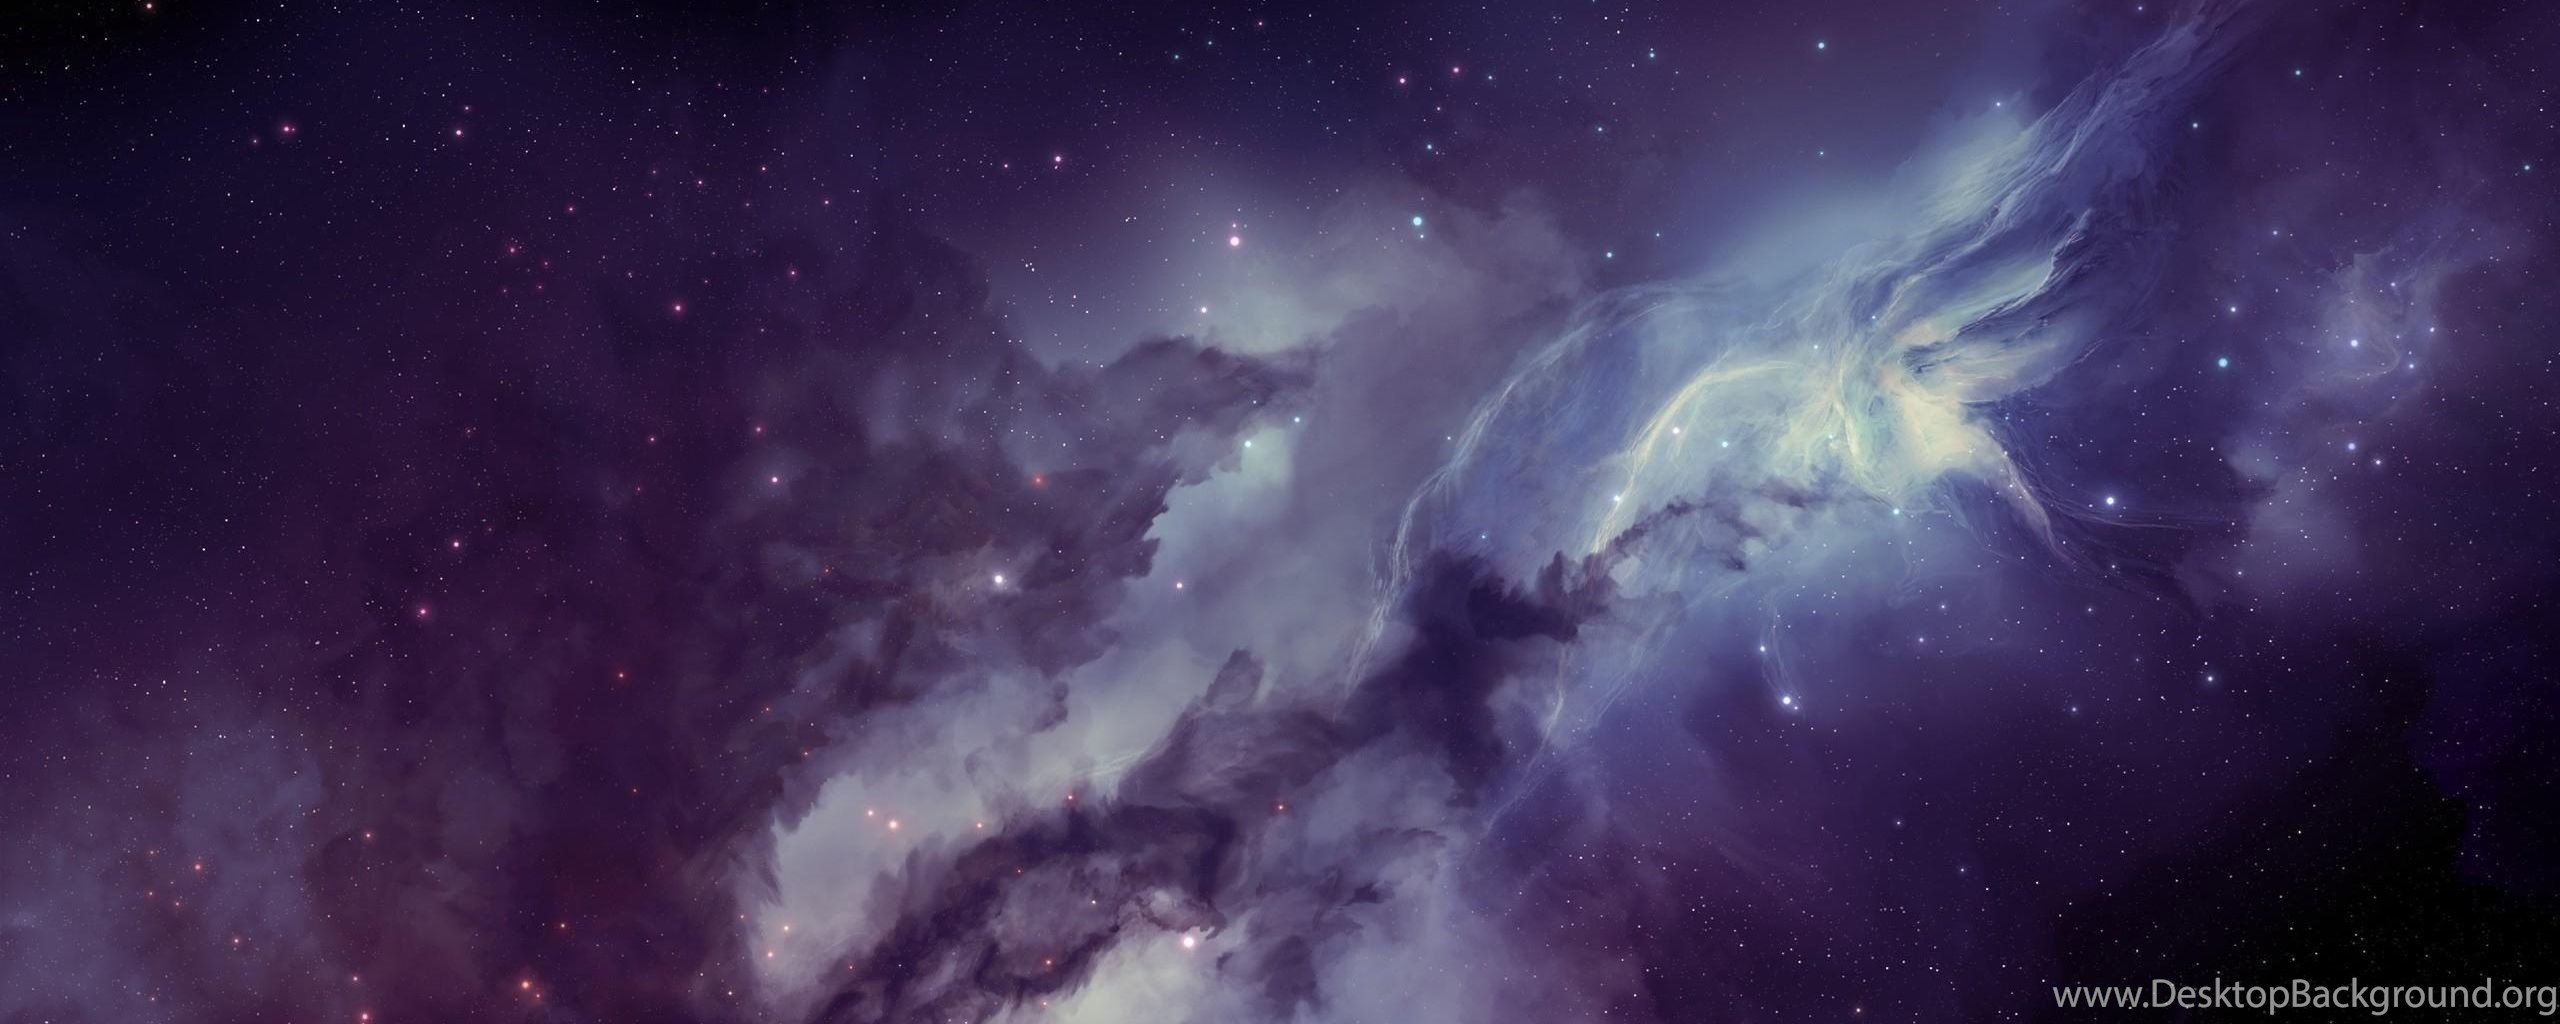 page 2: dual monitor resolution space wallpapers, desktop